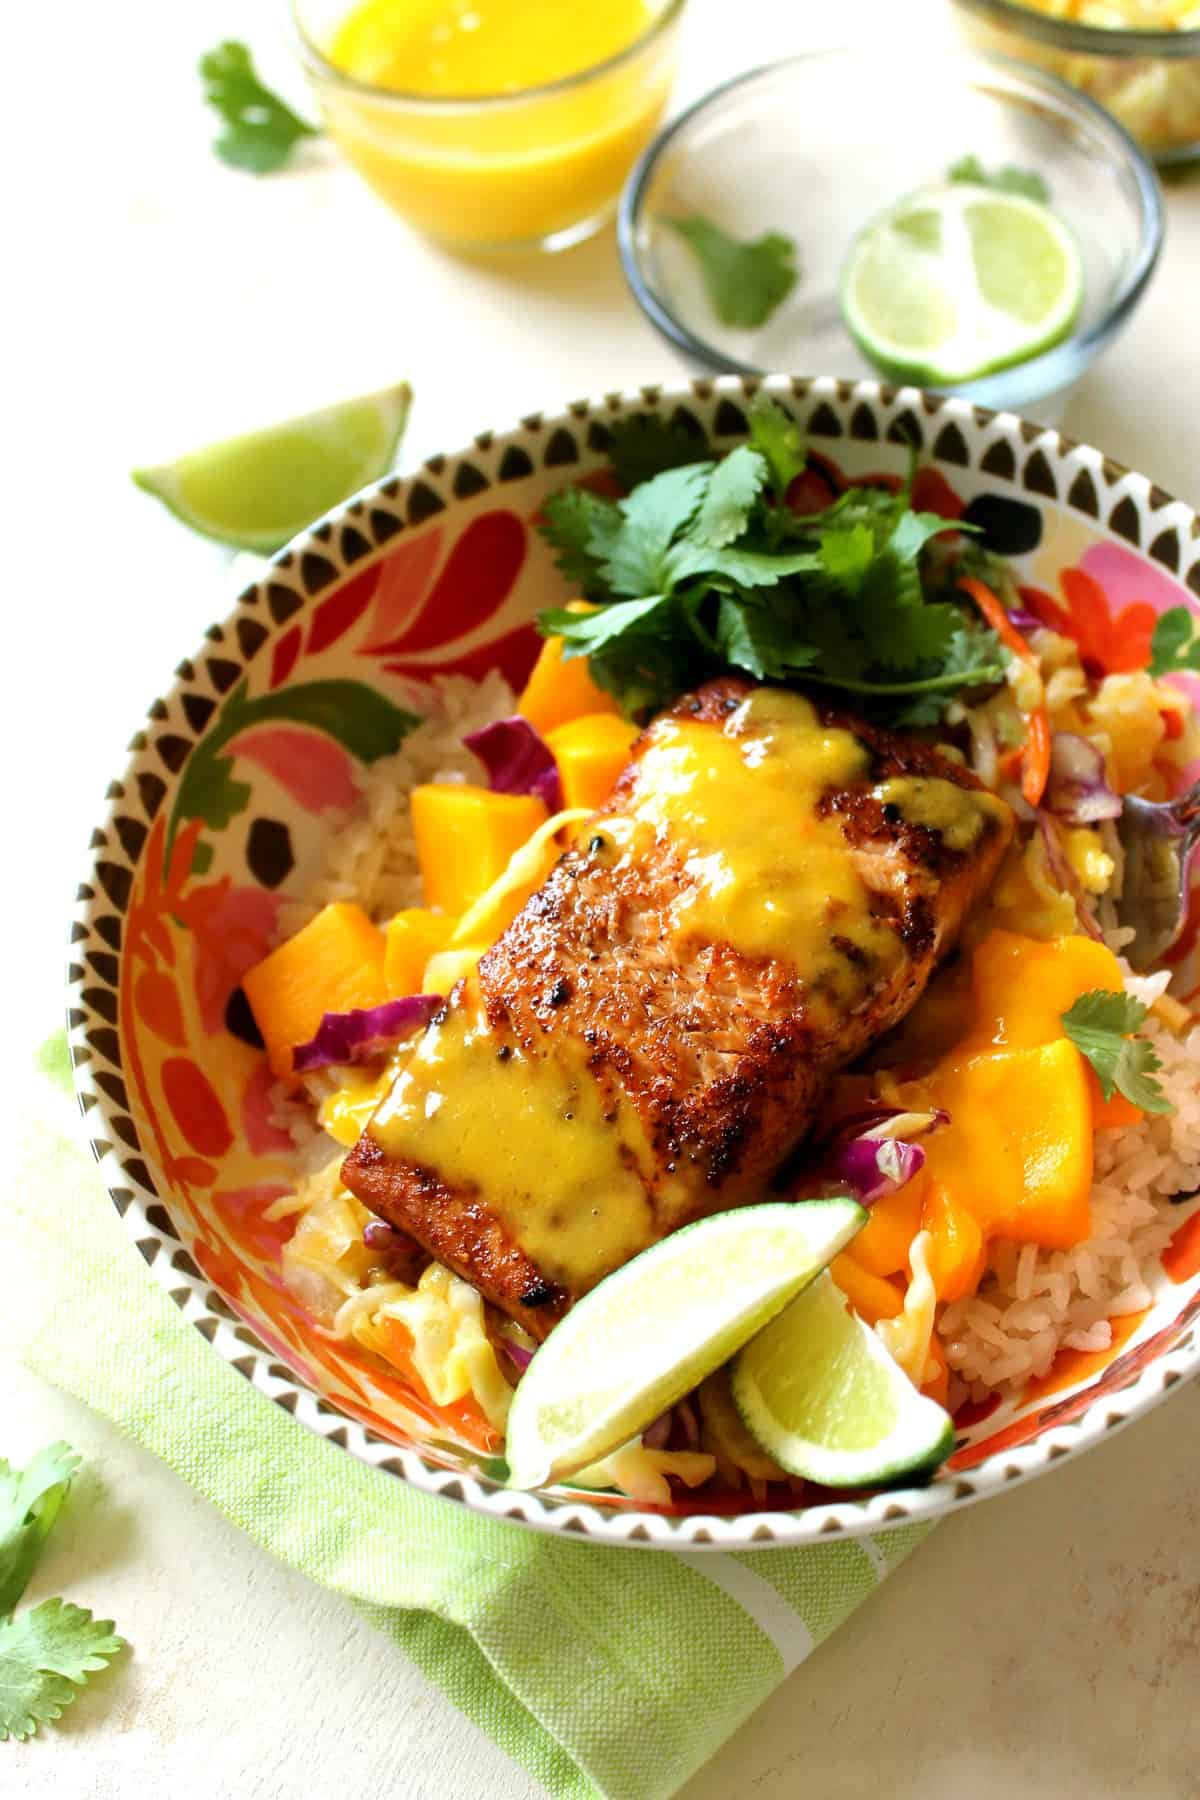 These mango salmon bowls are a healthy, filling lunch made with fresh salmon, coconut rice and a sweet mango sauce with mango chunks